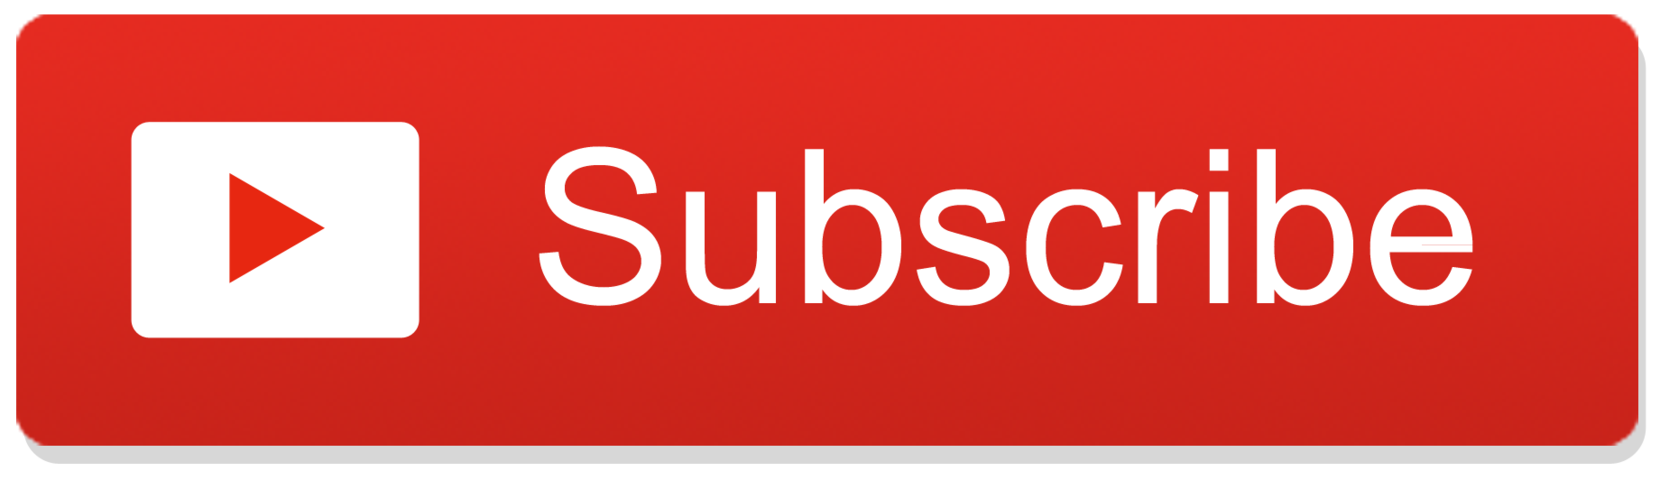 Subscribe.png - Subscribe PNG